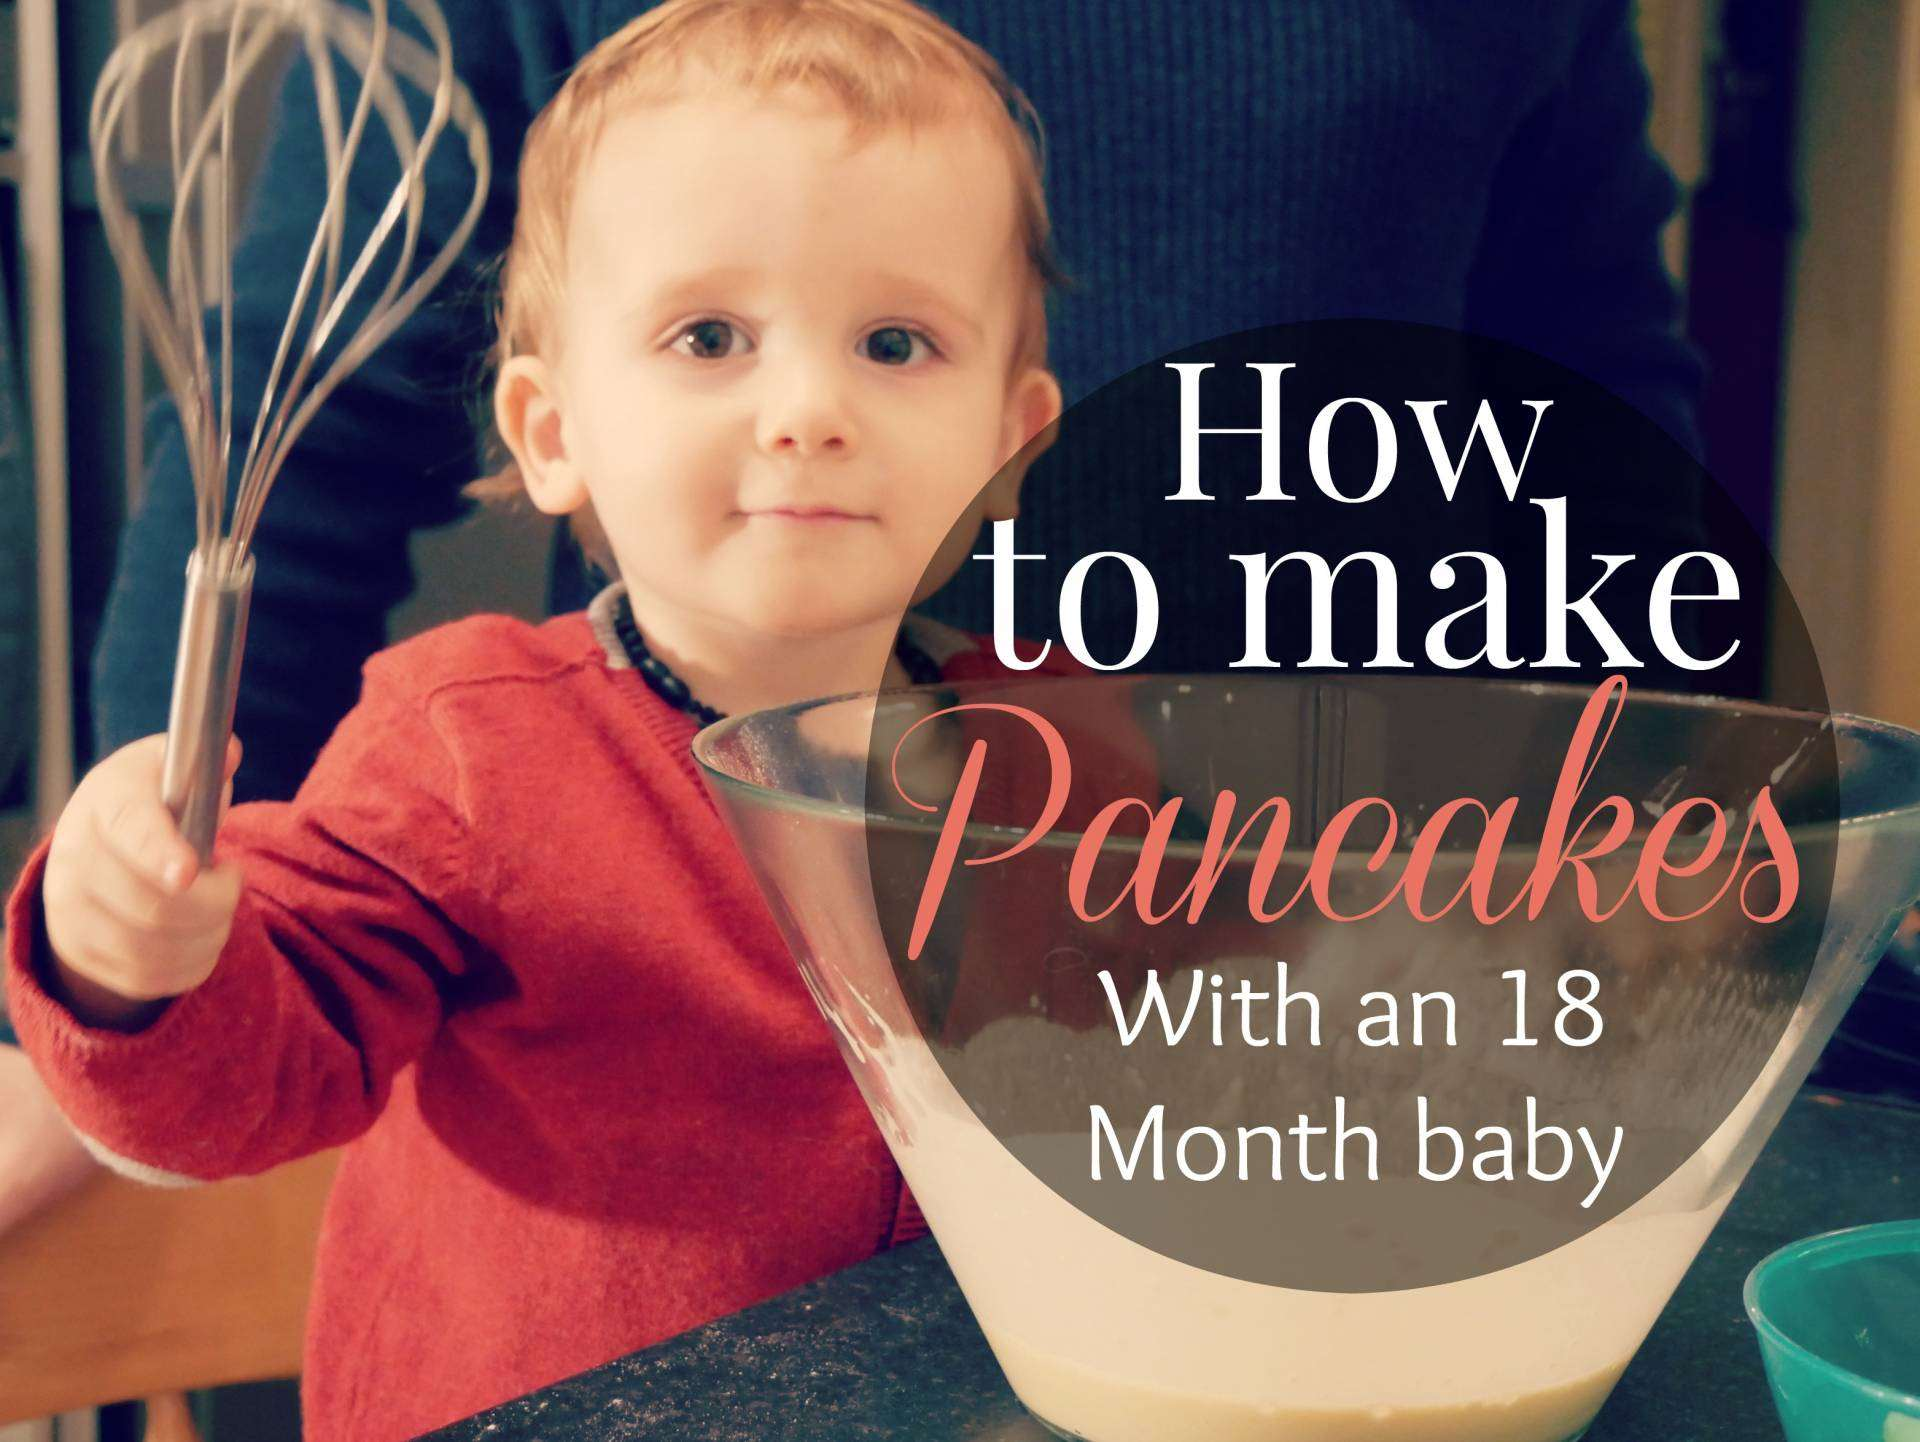 How to Cook Pancakes with an 18 Month Baby, How to make pancakes%, lifestyle%